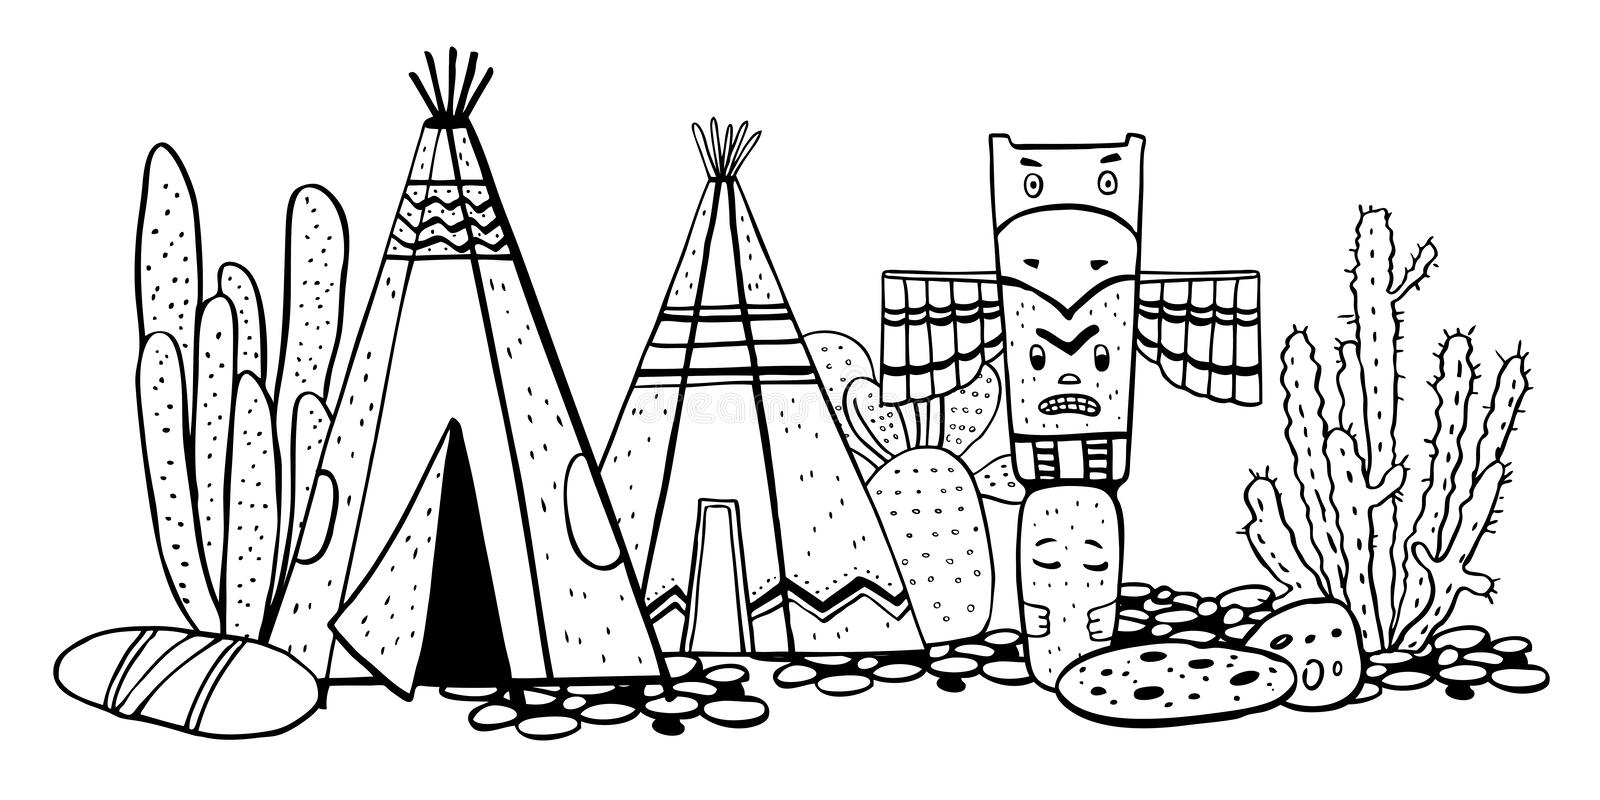 Native American indians traditional village. Two wigwams, totem pole and cactuses. Vector hand drawn sketch illustration royalty free illustration